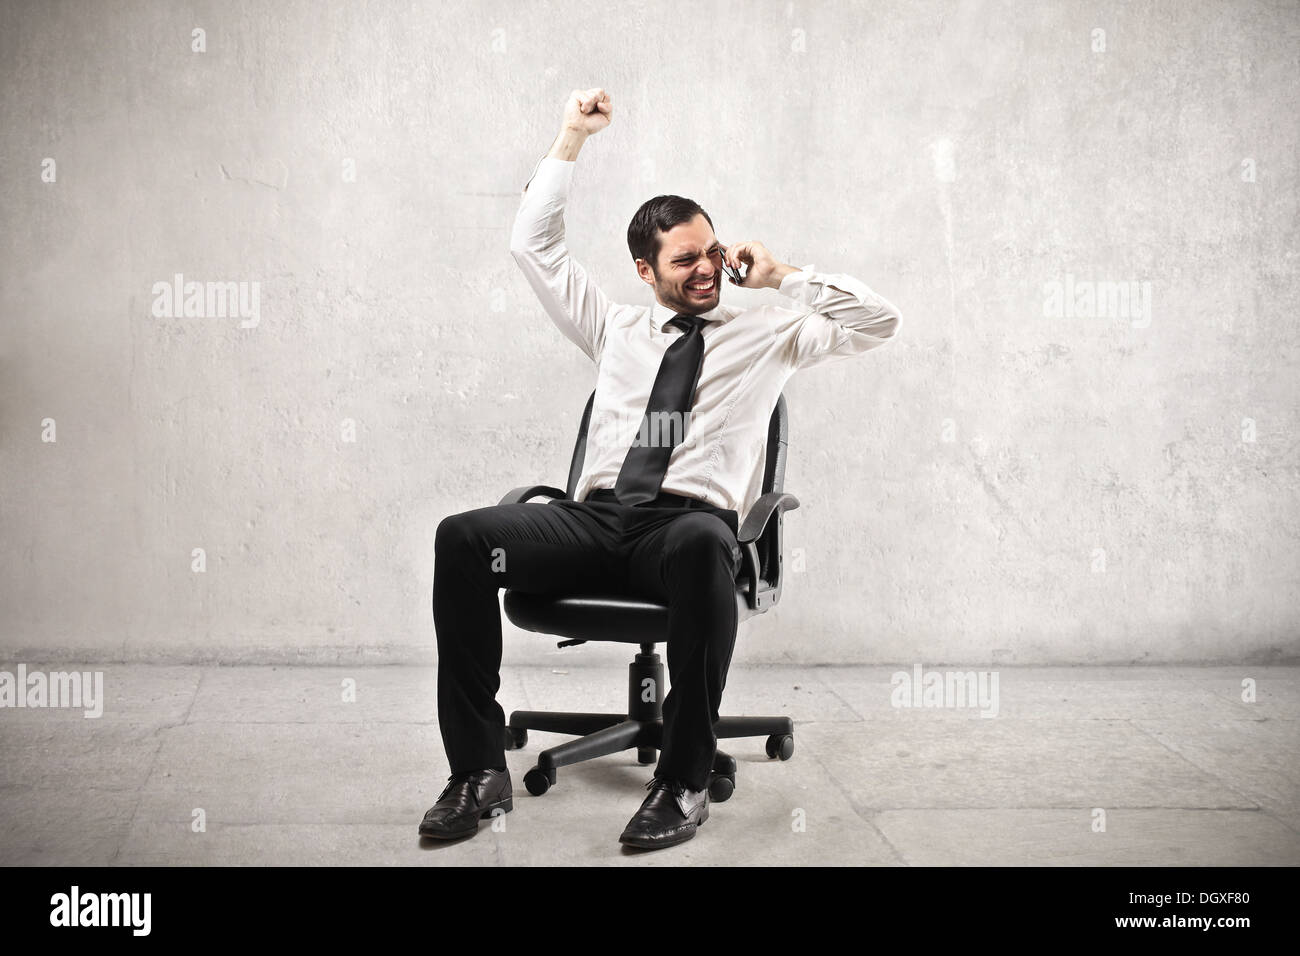 Businessman rejoicing - Stock Image